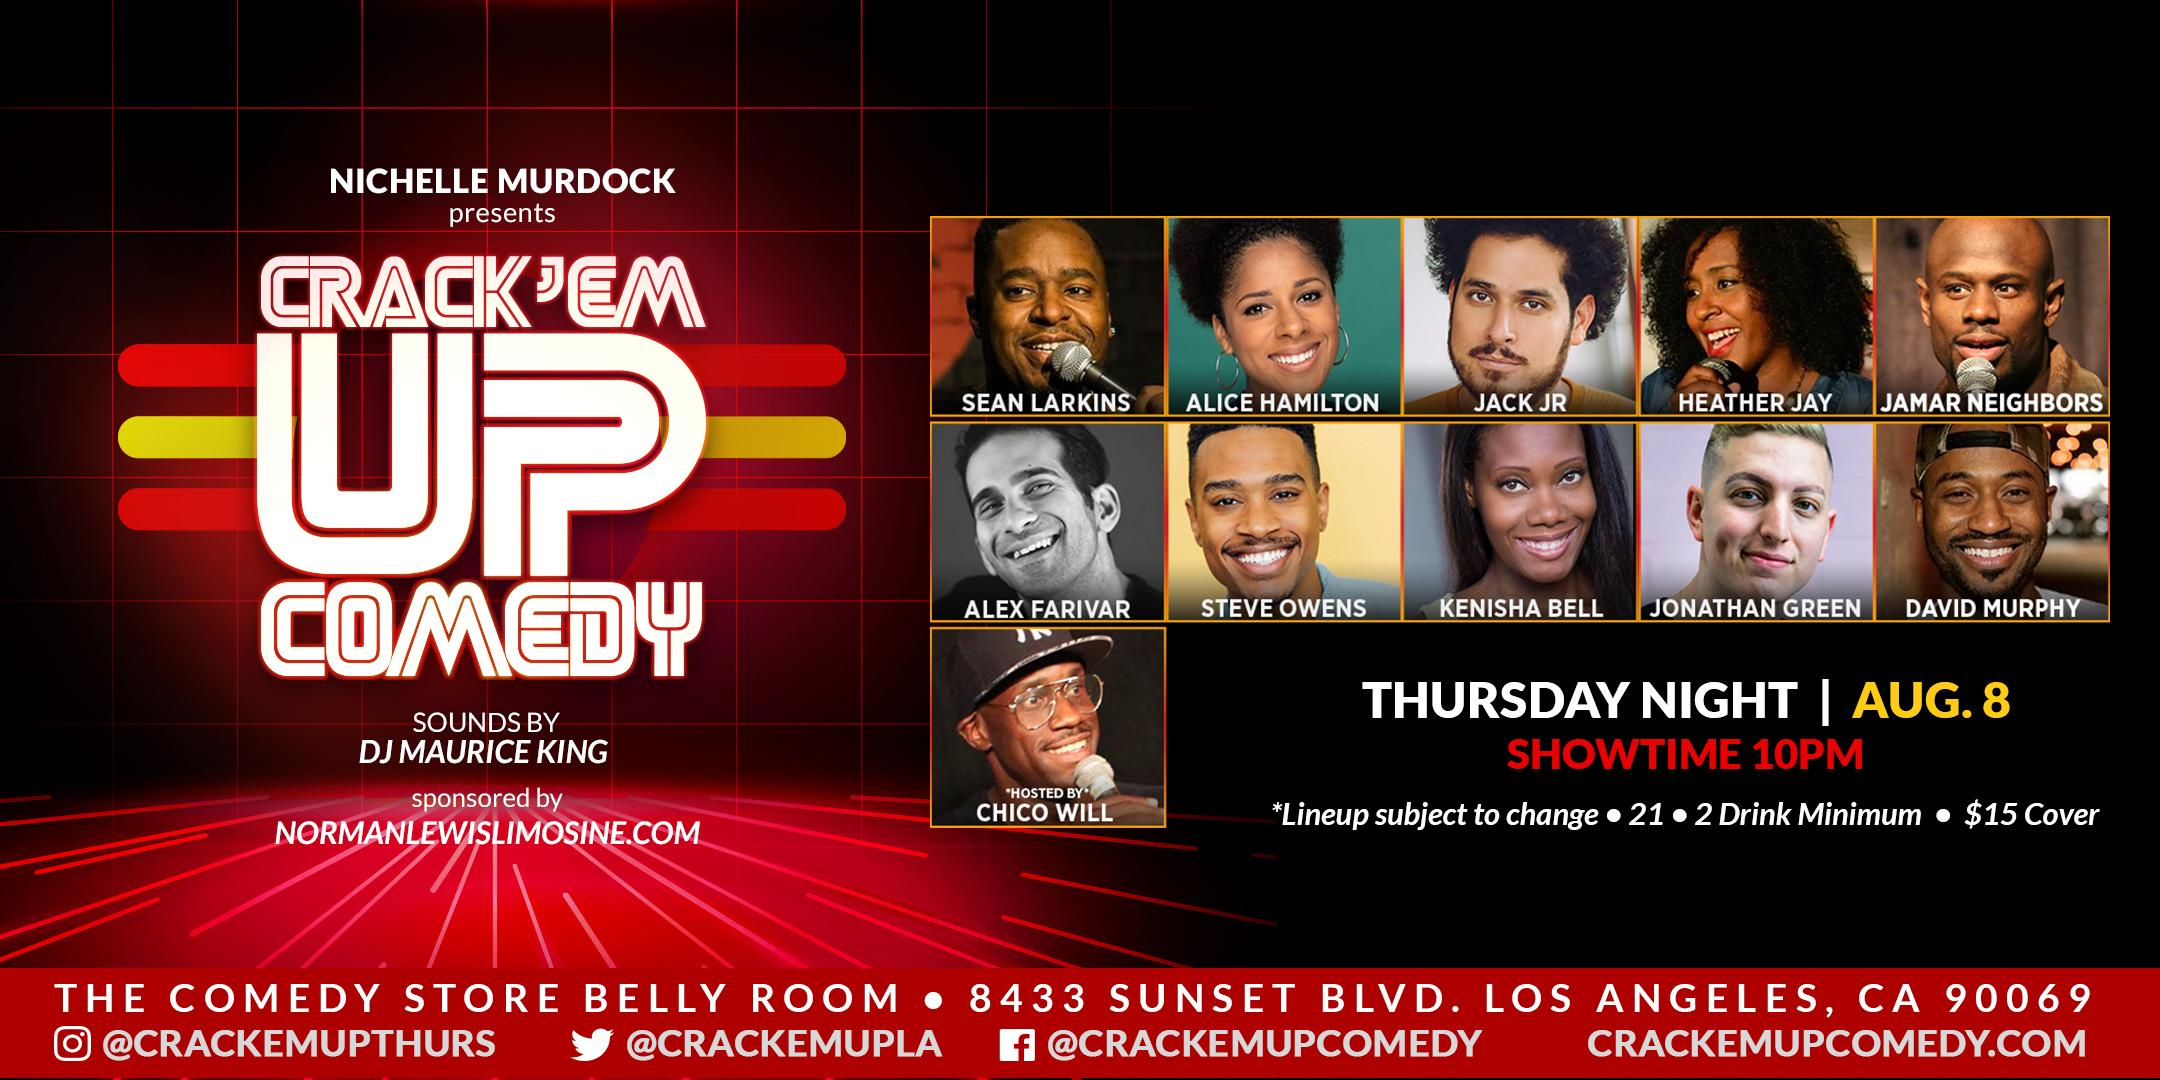 The Belly Room – The Comedy Store